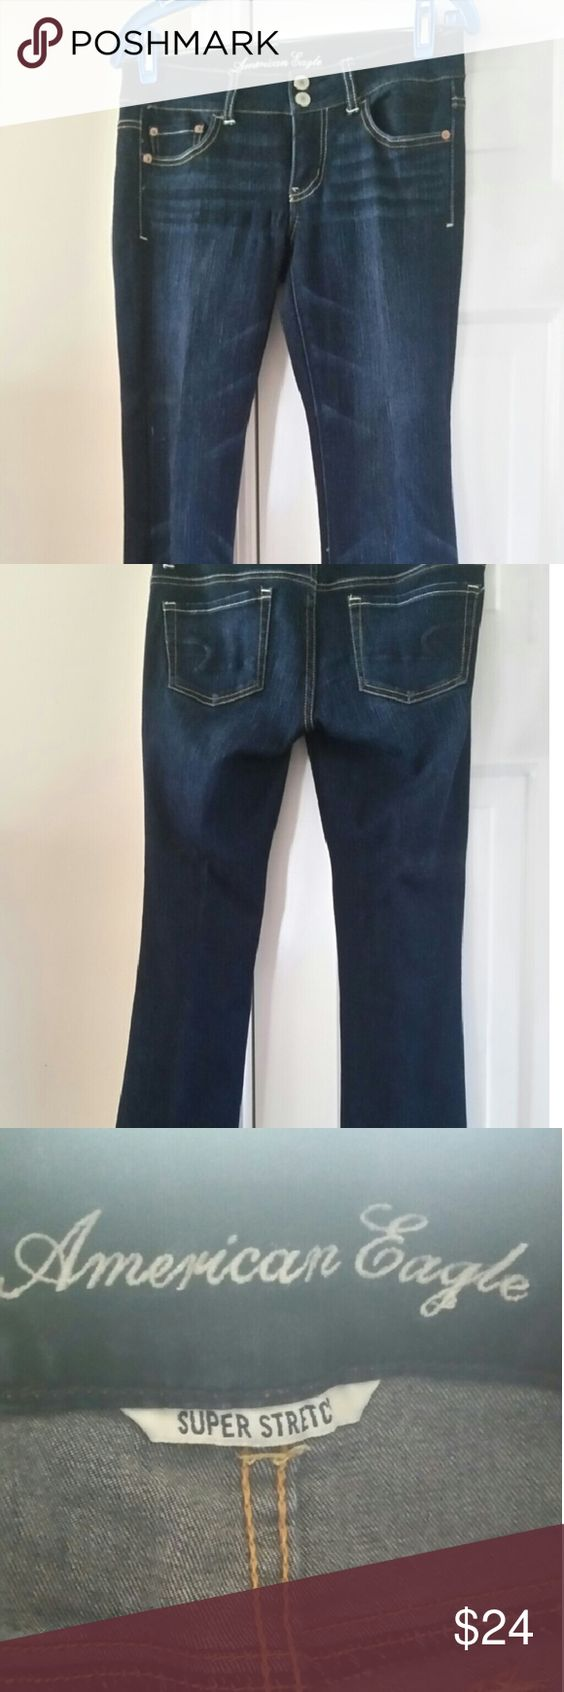 American Eagle jeans New Ameican Eagle jeans super stretch Artist. Offers welcome!! American Eagle Outfitters Jeans